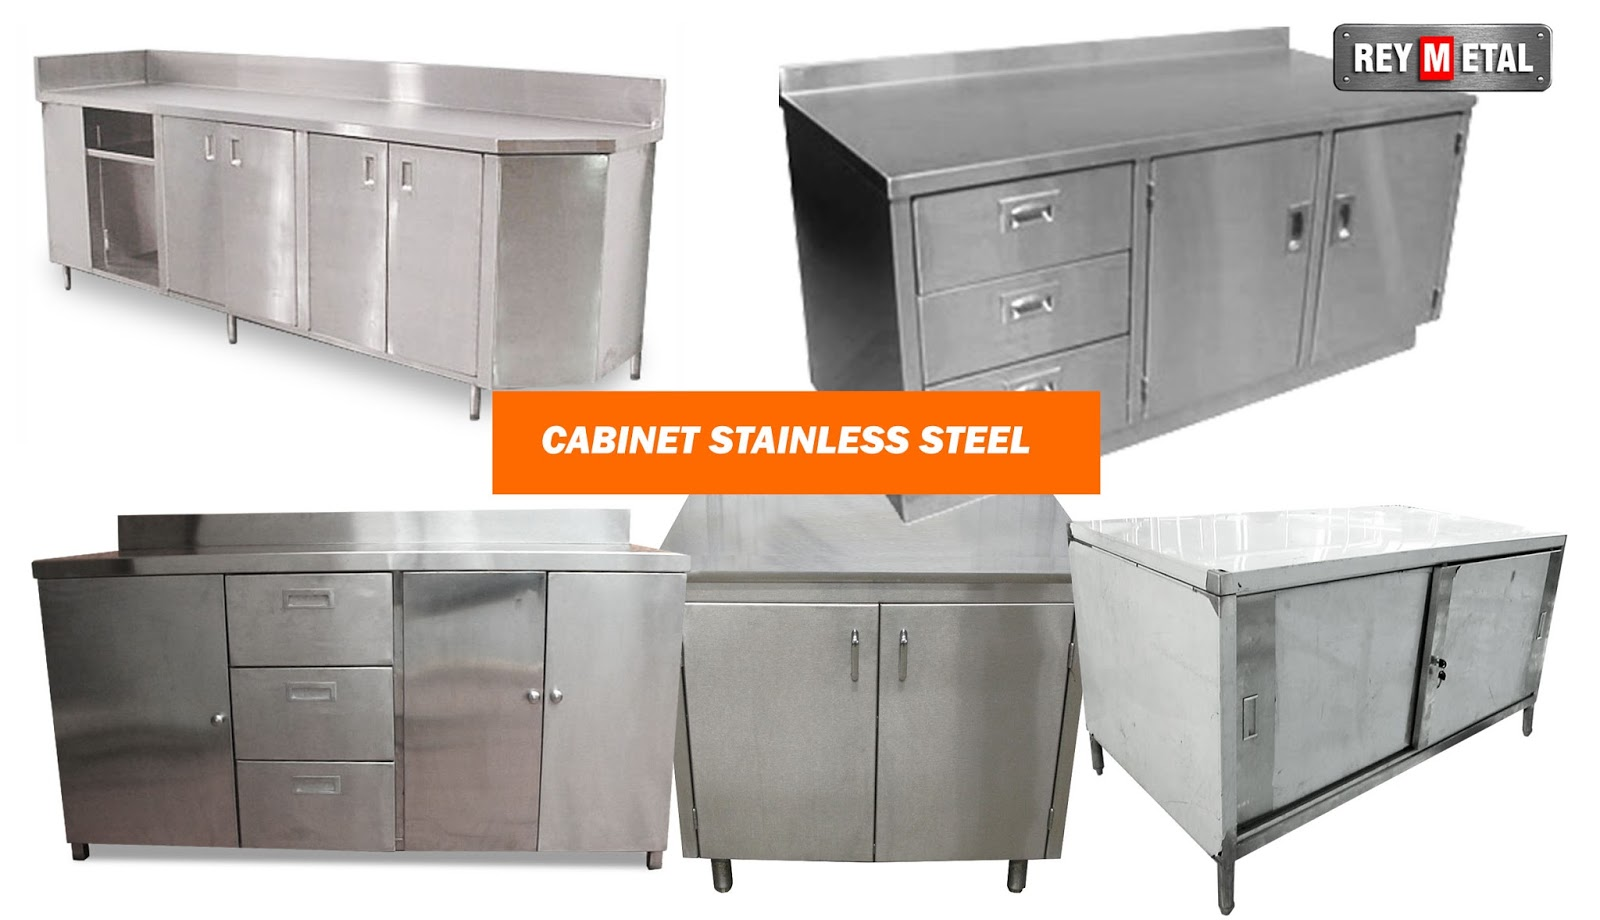 Cabinet stainless kitchen set